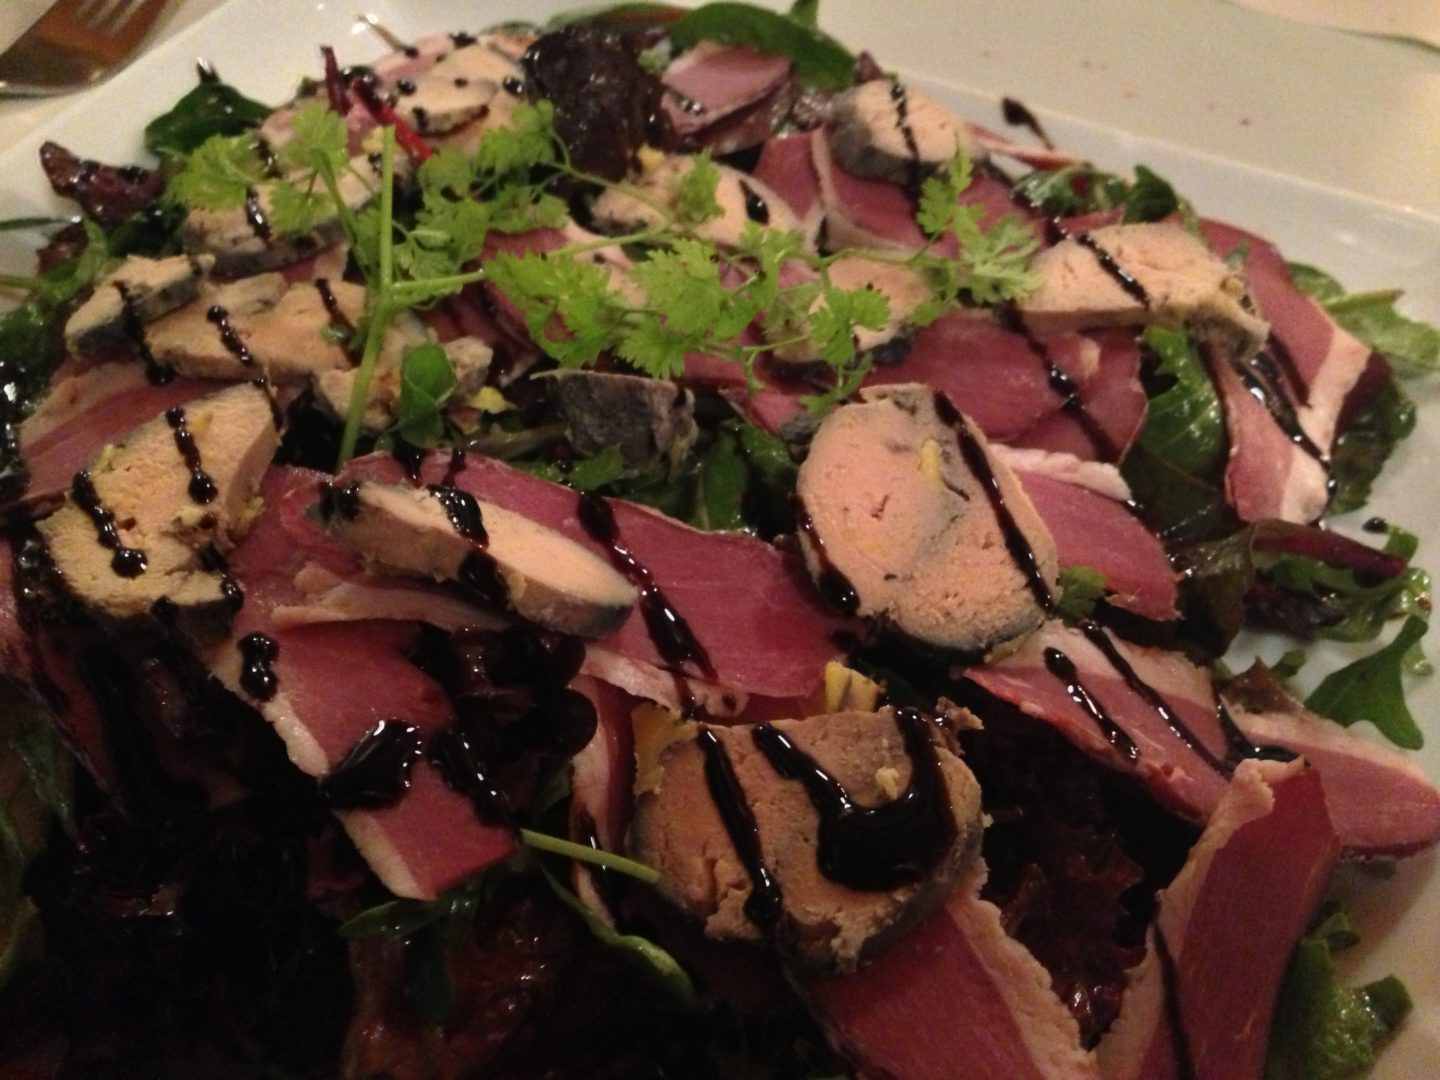 Smoked Duck and Foie Gras Salad